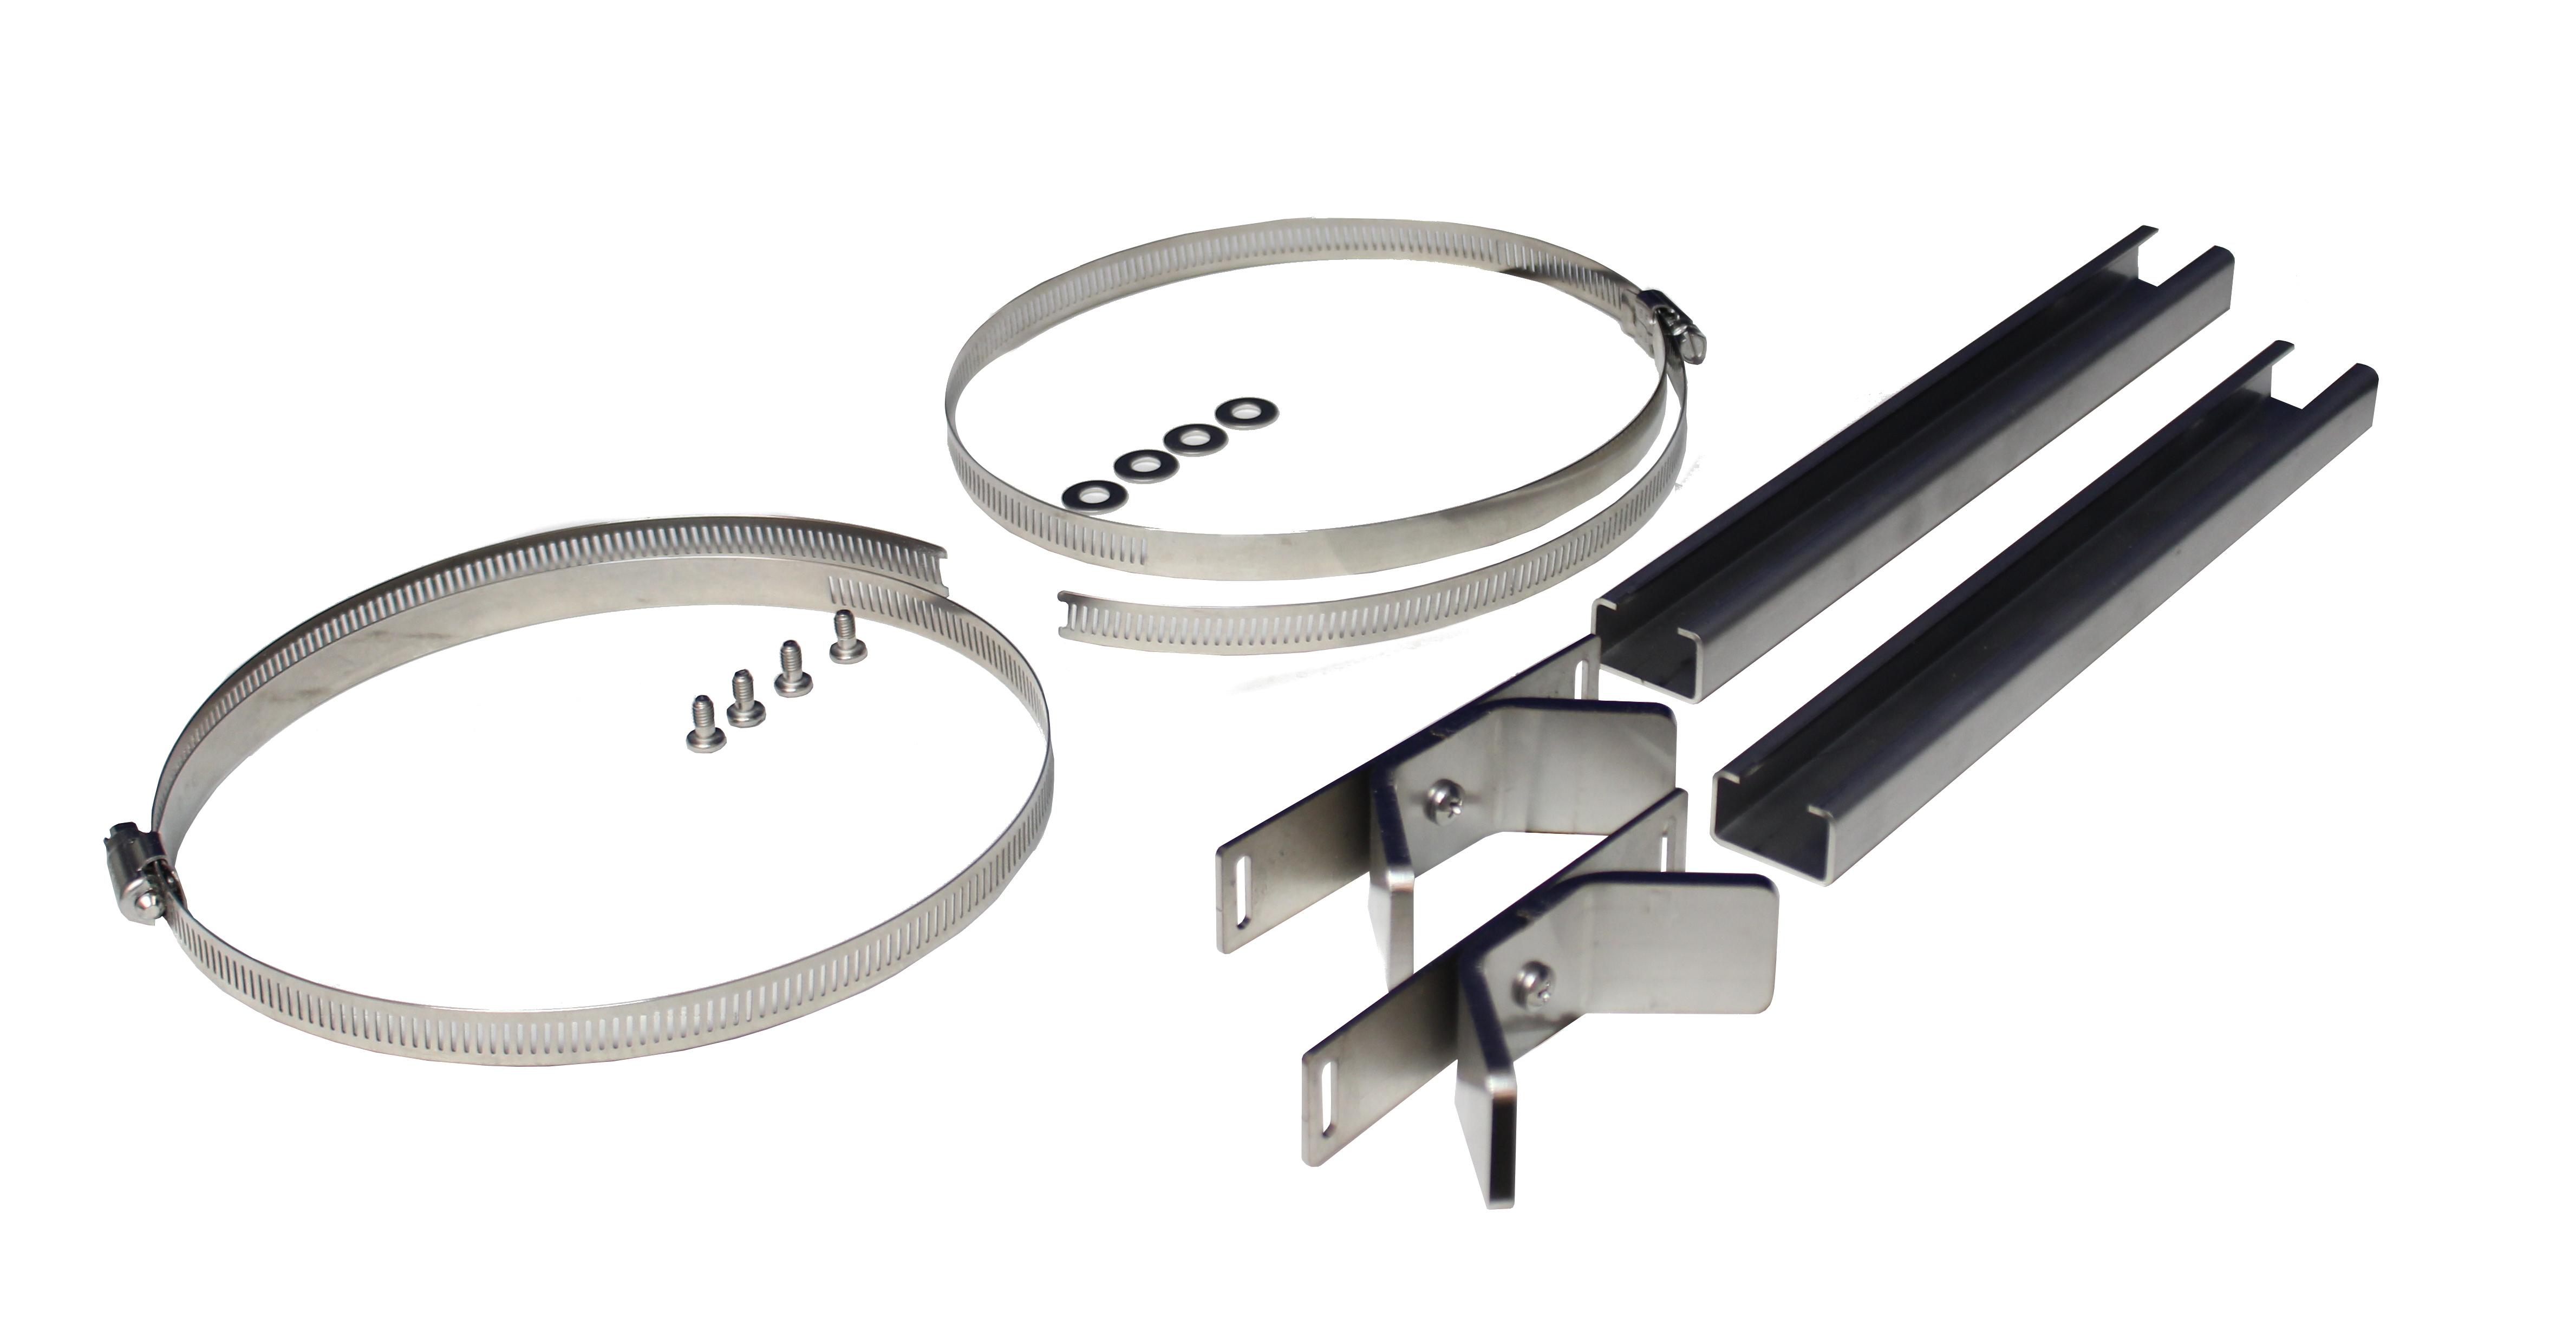 Two stainless steel cable clamp, two stainless steel brackets and rails, four stainless steel screws and washers